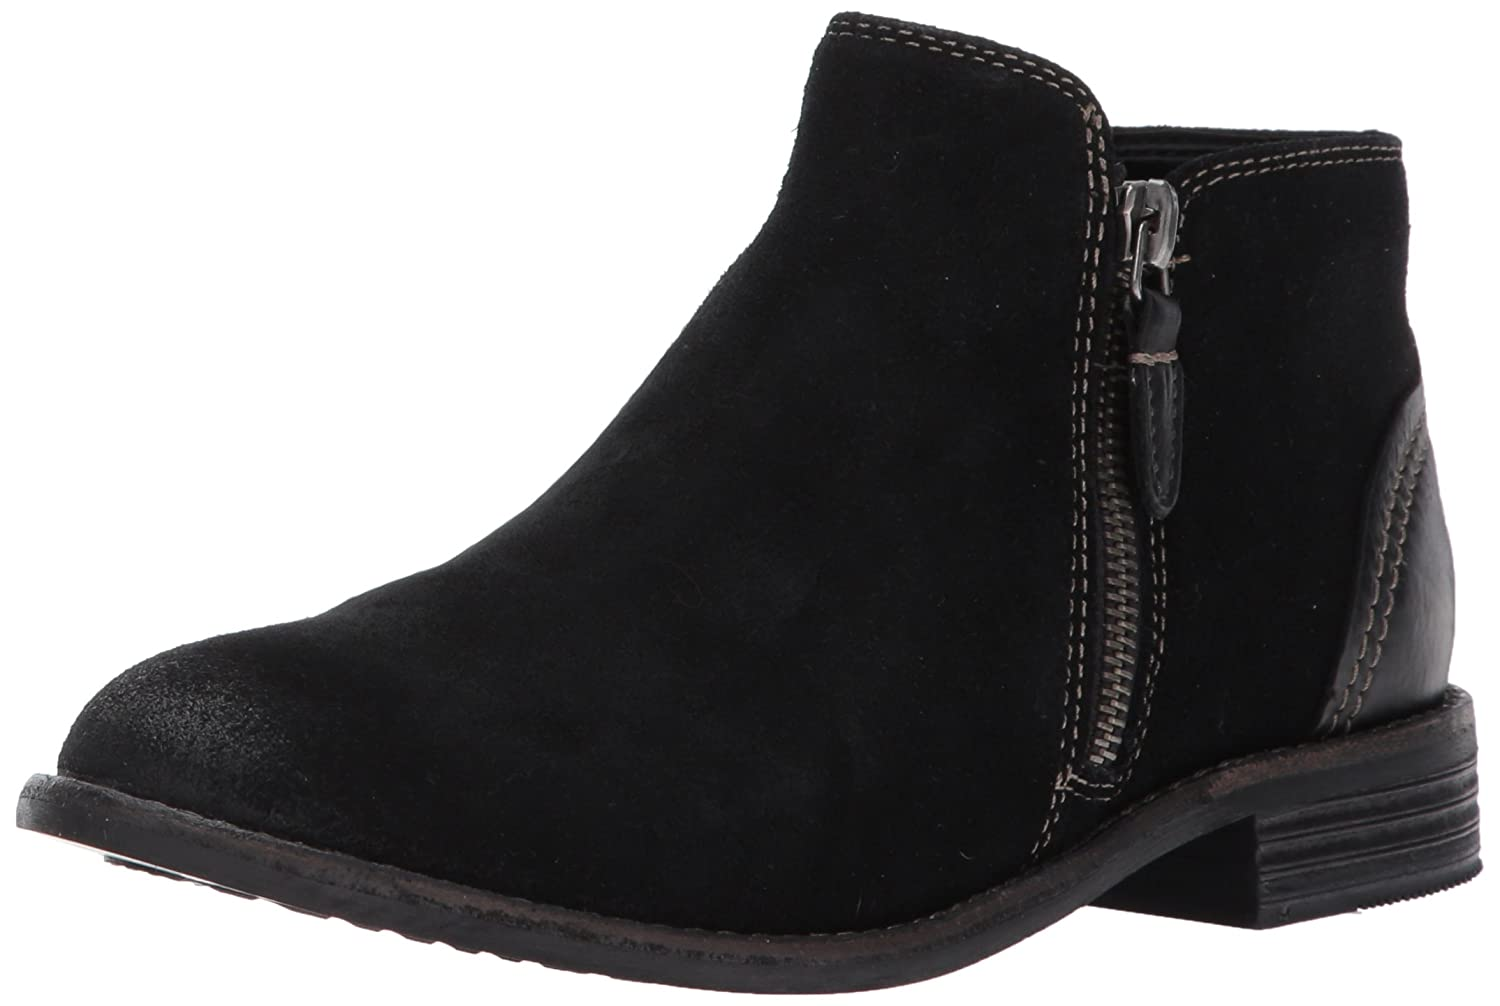 Buy Clarks Maypearl Edie Ankle Boots For Women Online